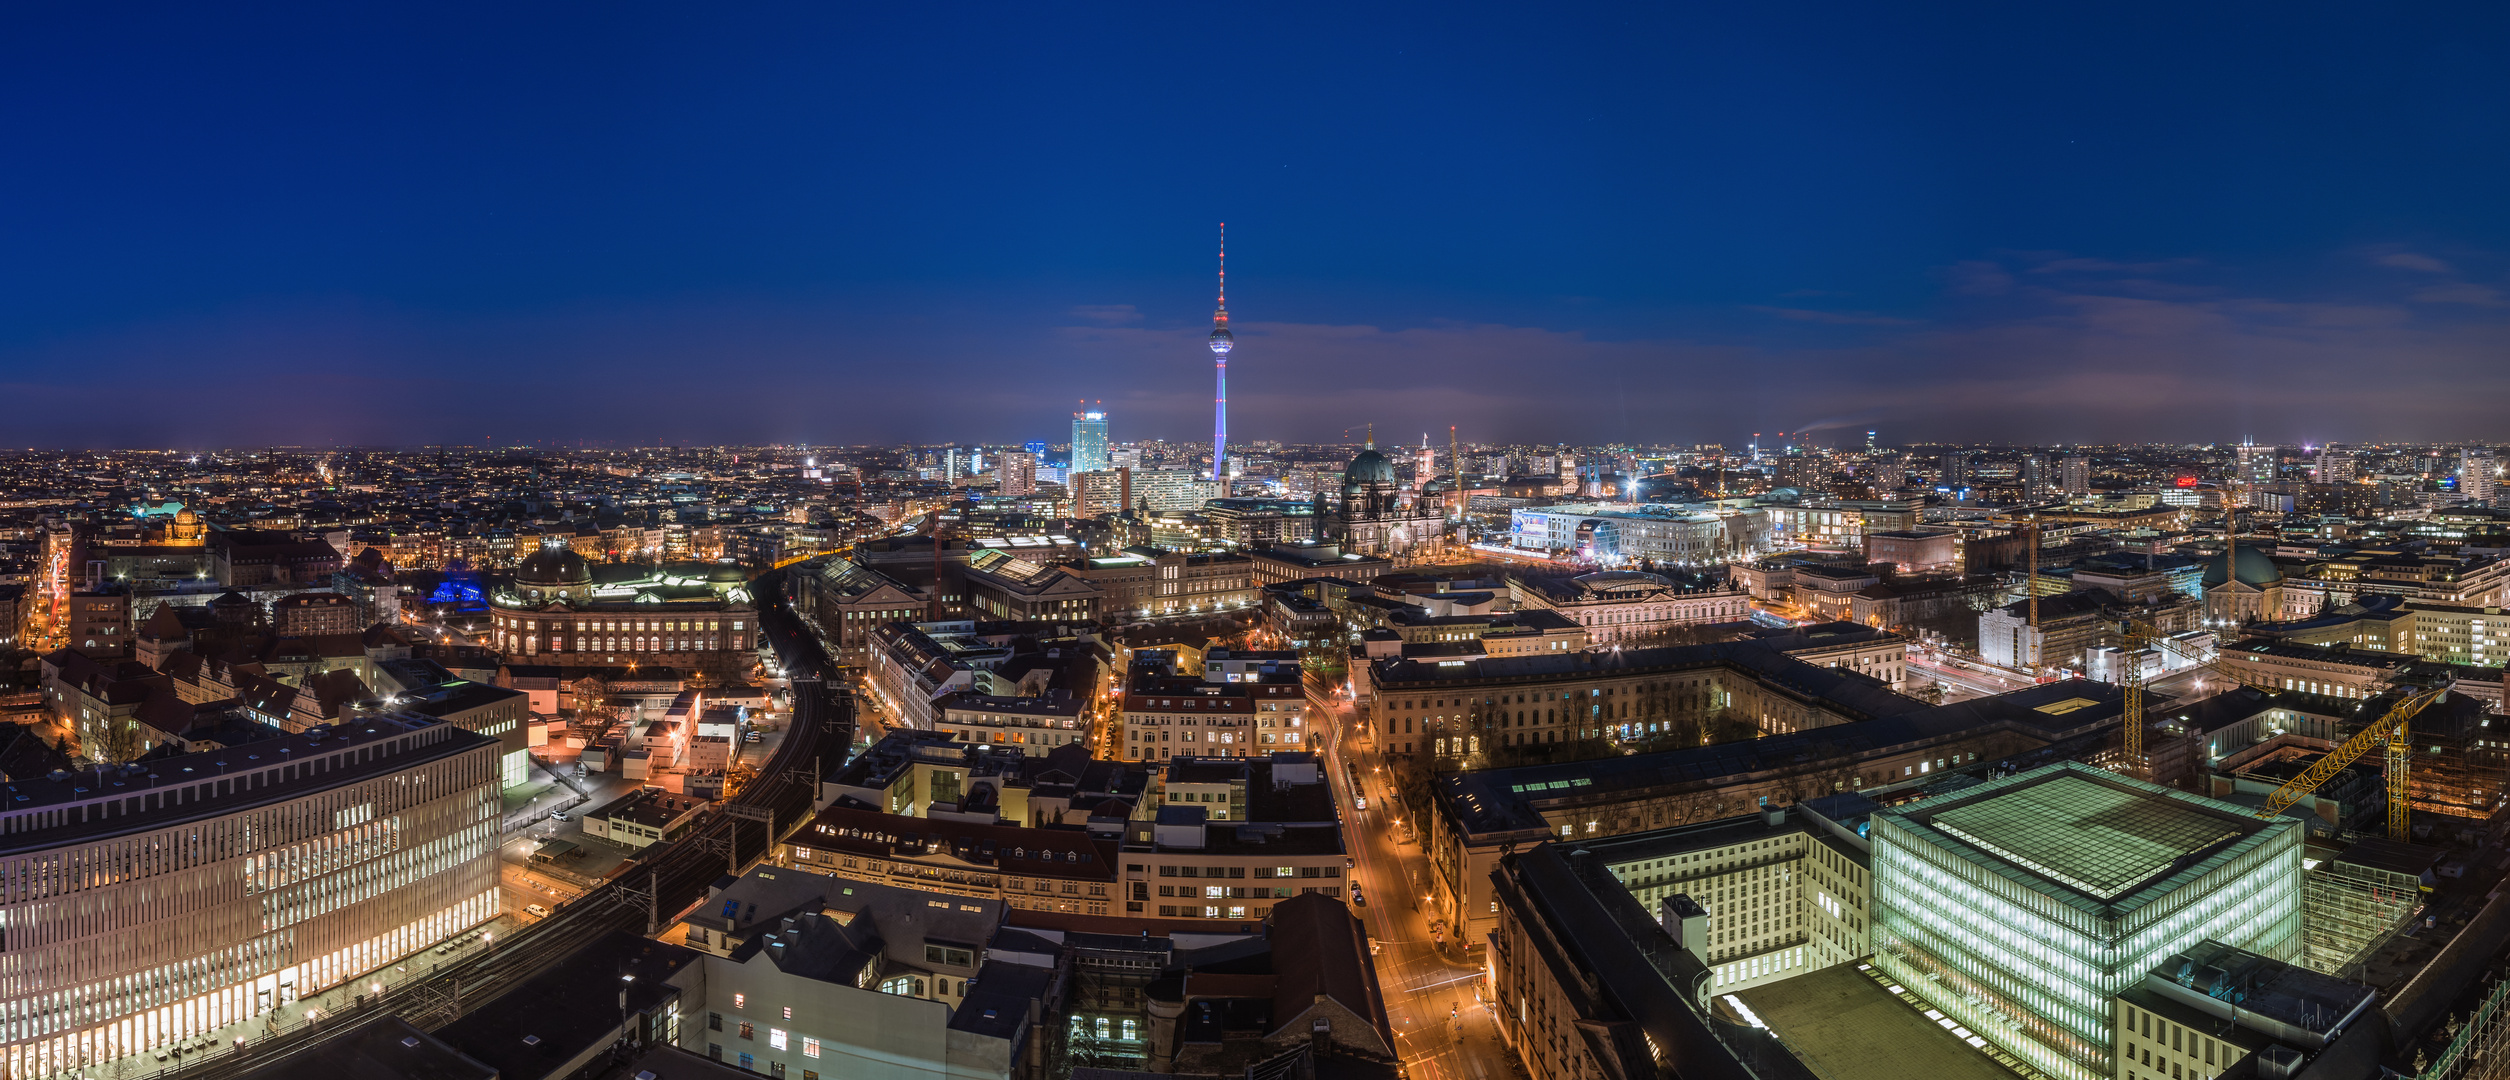 berlin skyline ihz foto bild deutschland europe berlin bilder auf fotocommunity. Black Bedroom Furniture Sets. Home Design Ideas